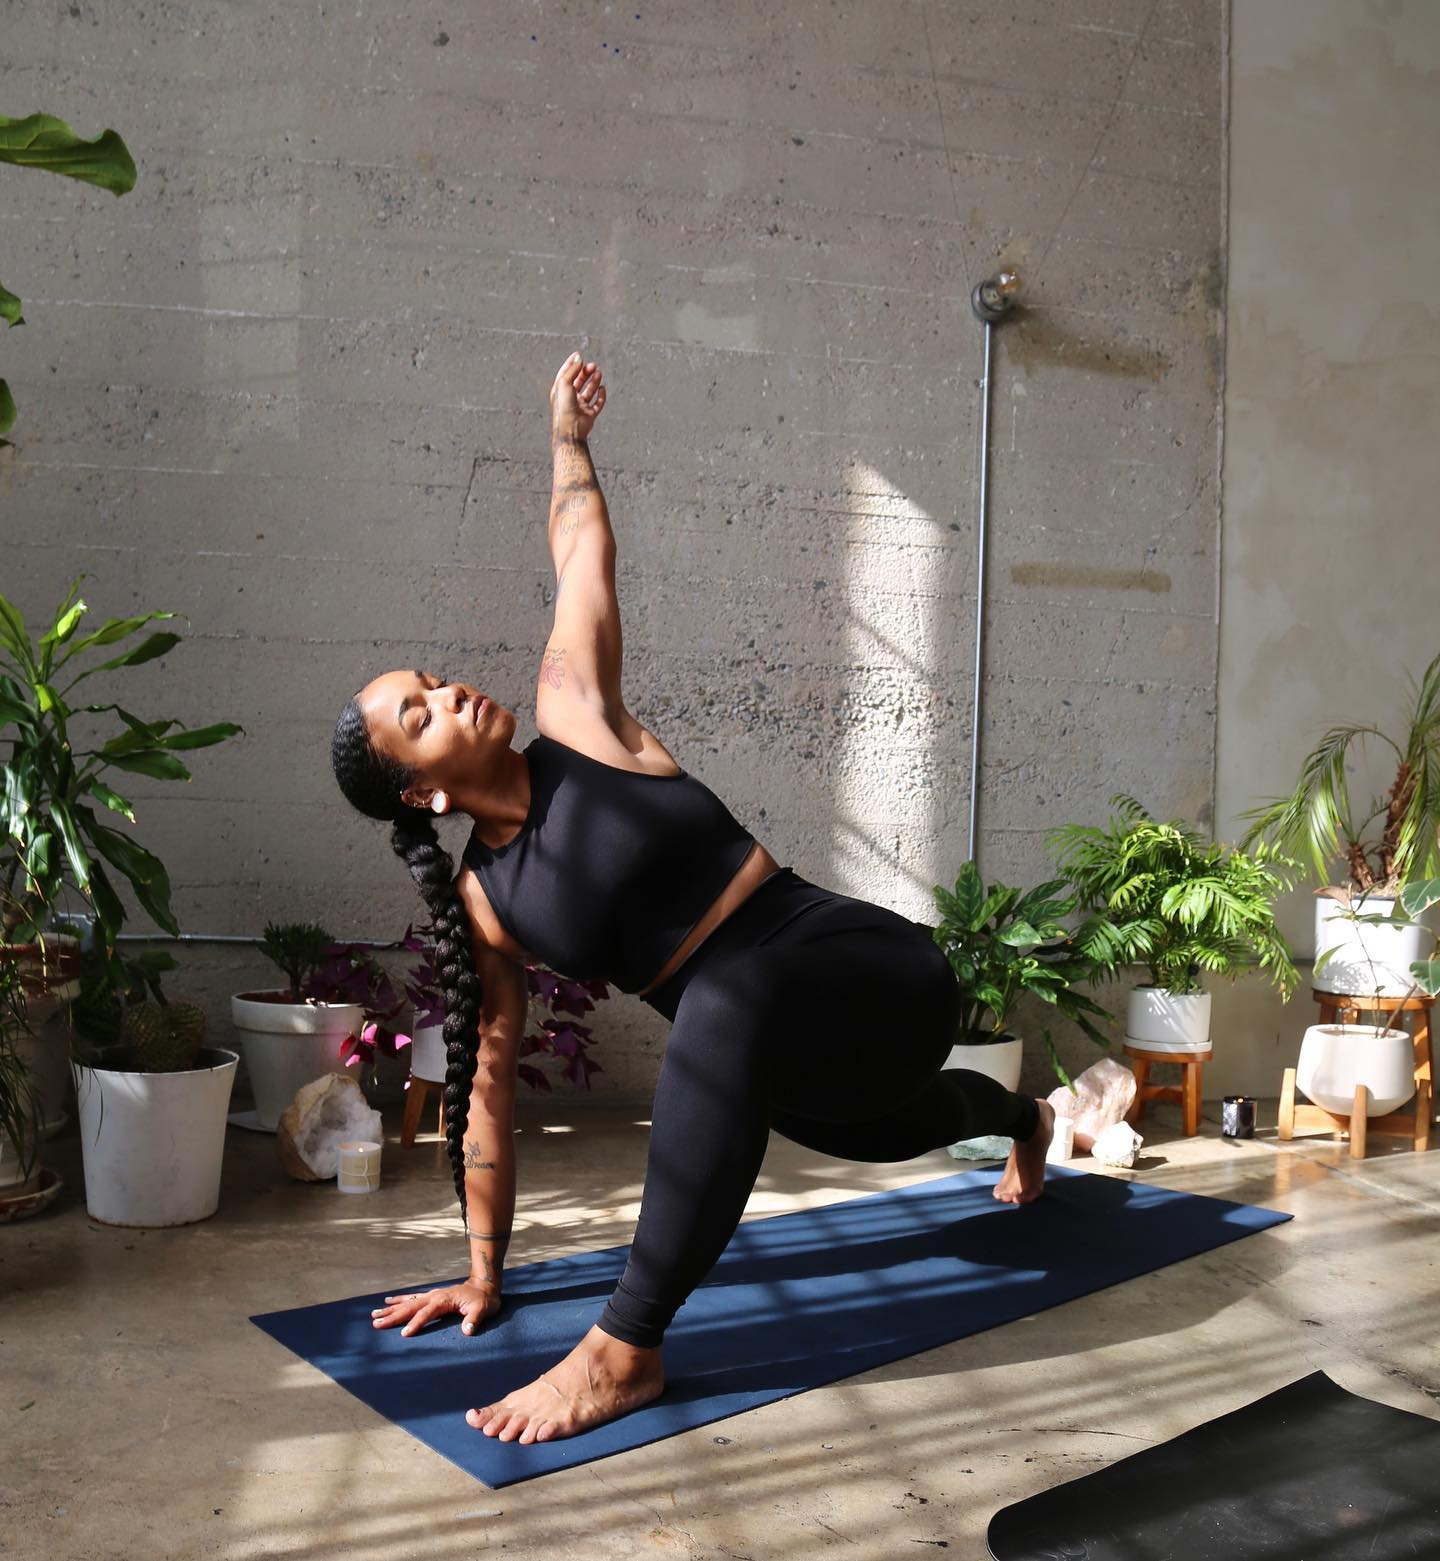 @meldouglasyoga wearing an all black workout set with high-neck cropped sports bra tank and high-waisted leggings while practicing yoga in her plant-filled studio.